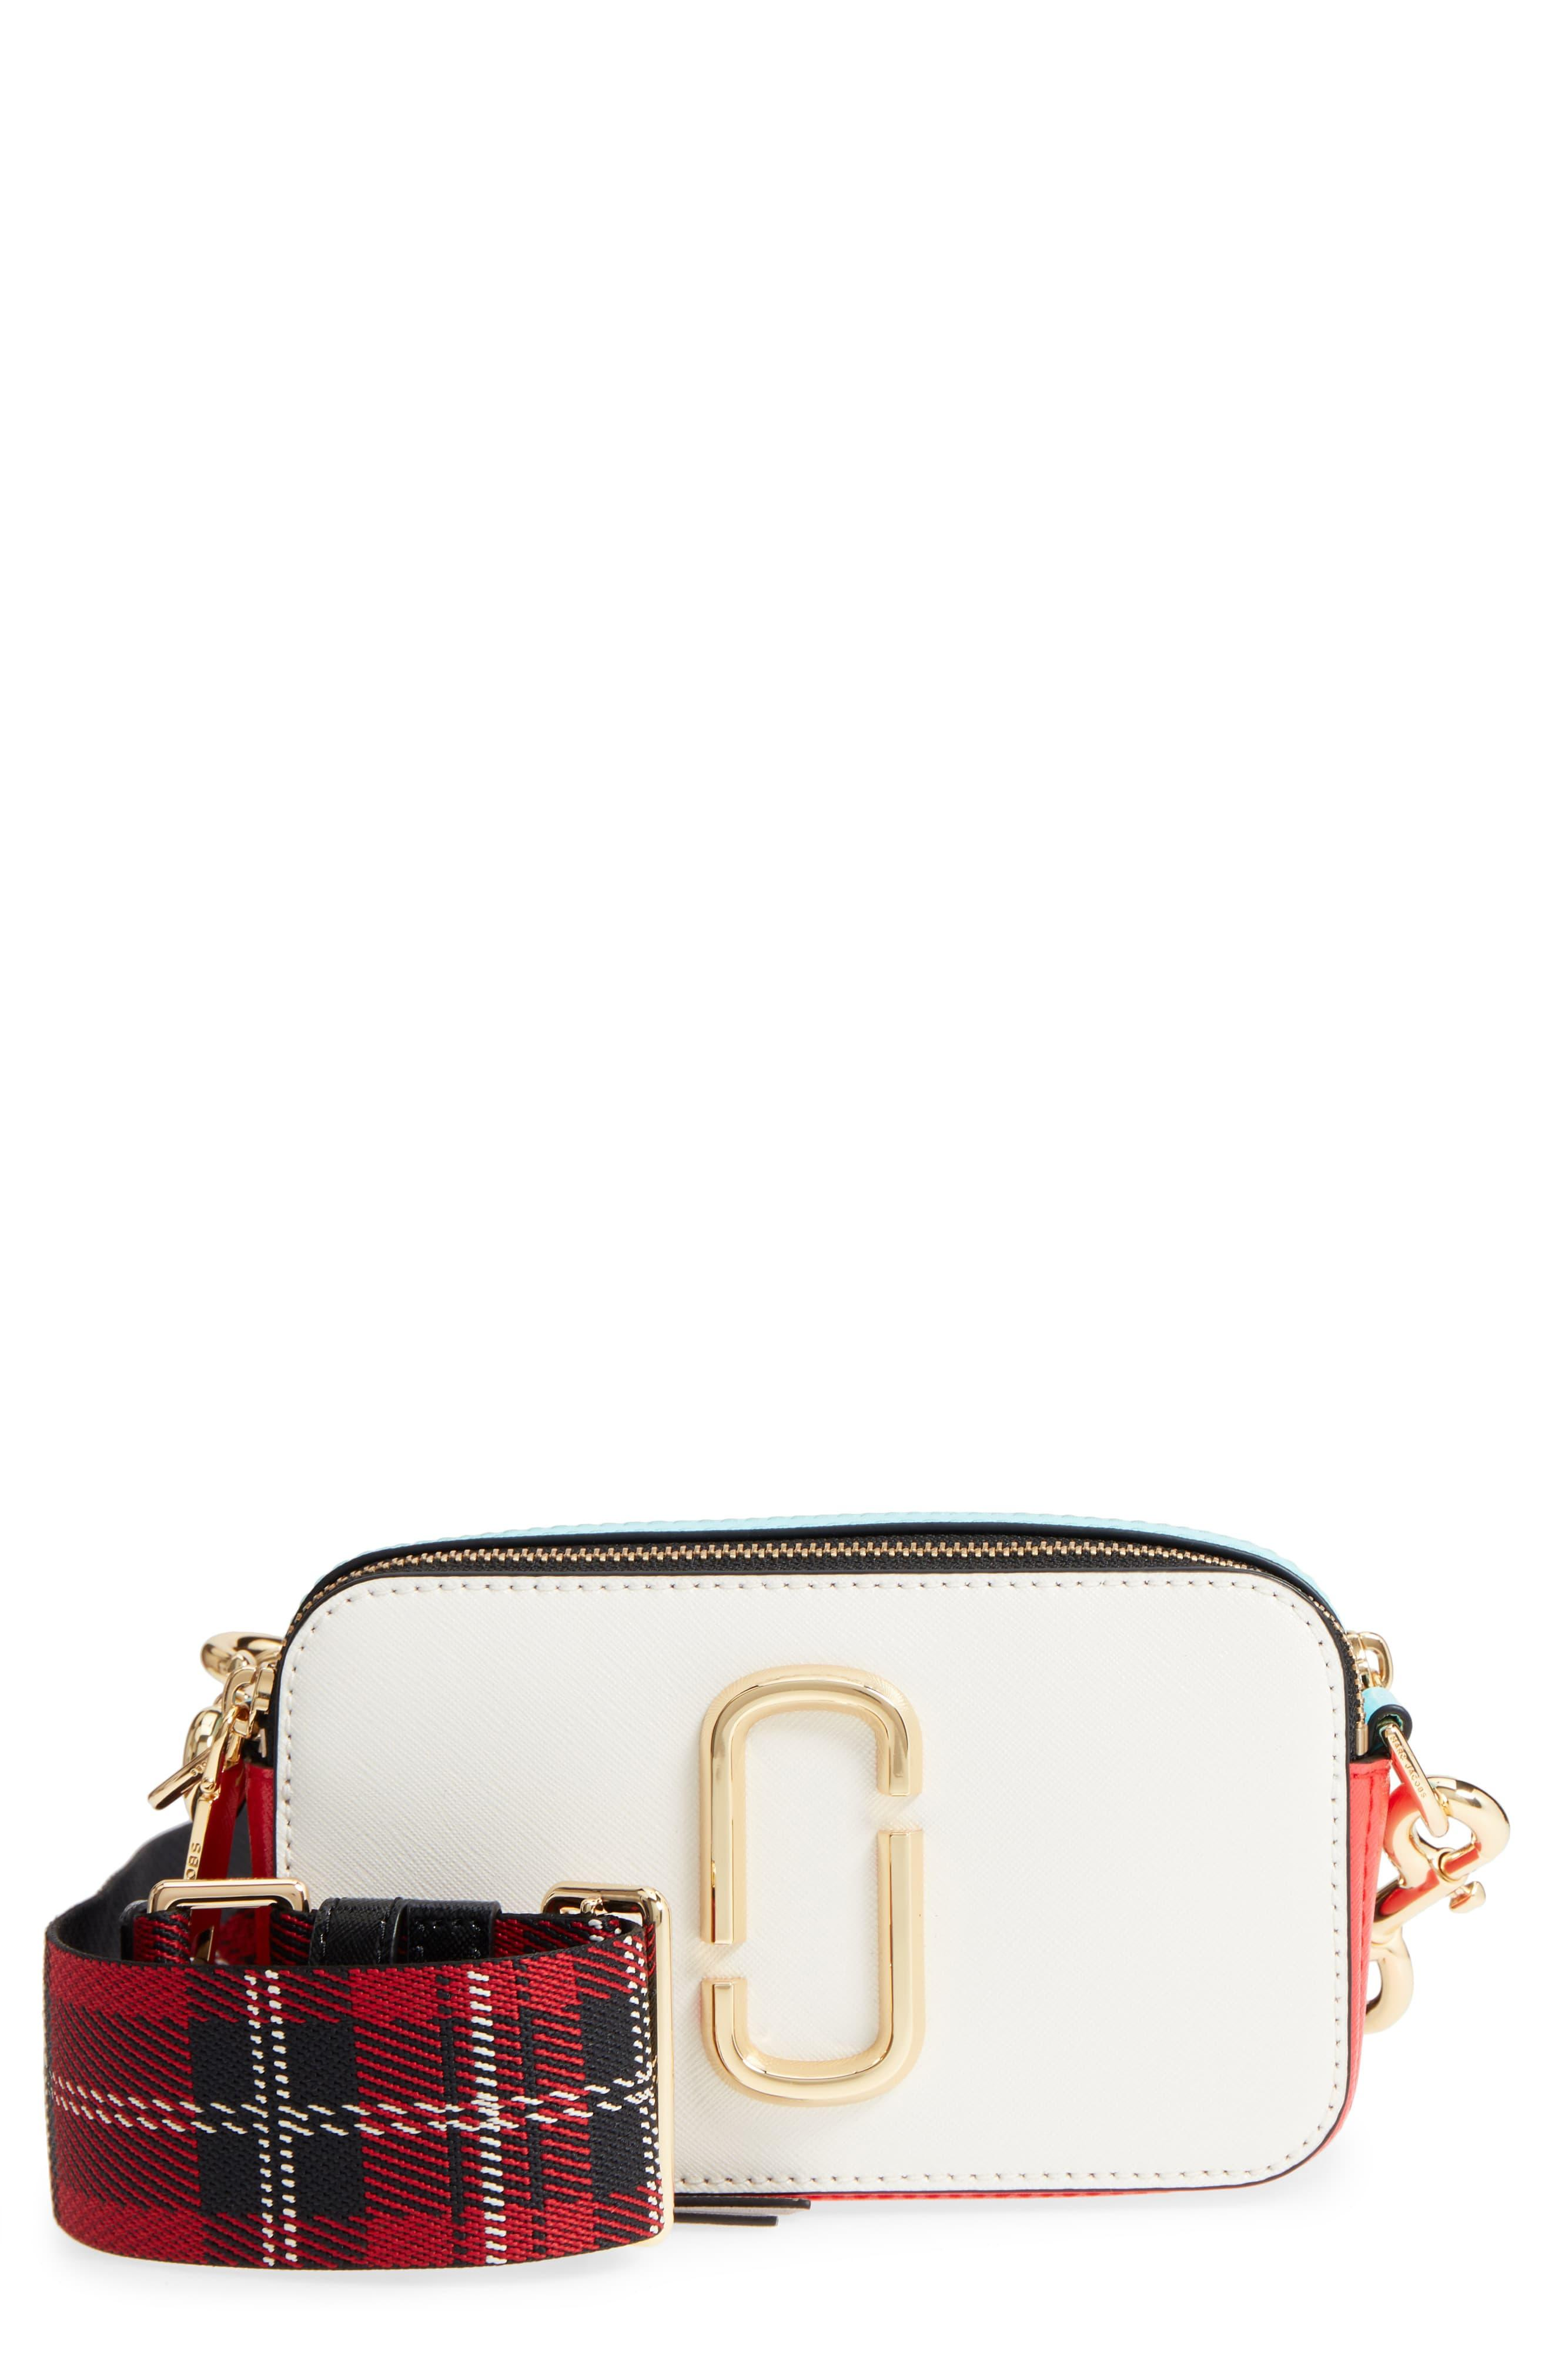 eb2c750f0f Marc Jacobs - Multicolor Snapshot Leather Camera Bag - Lyst. View fullscreen